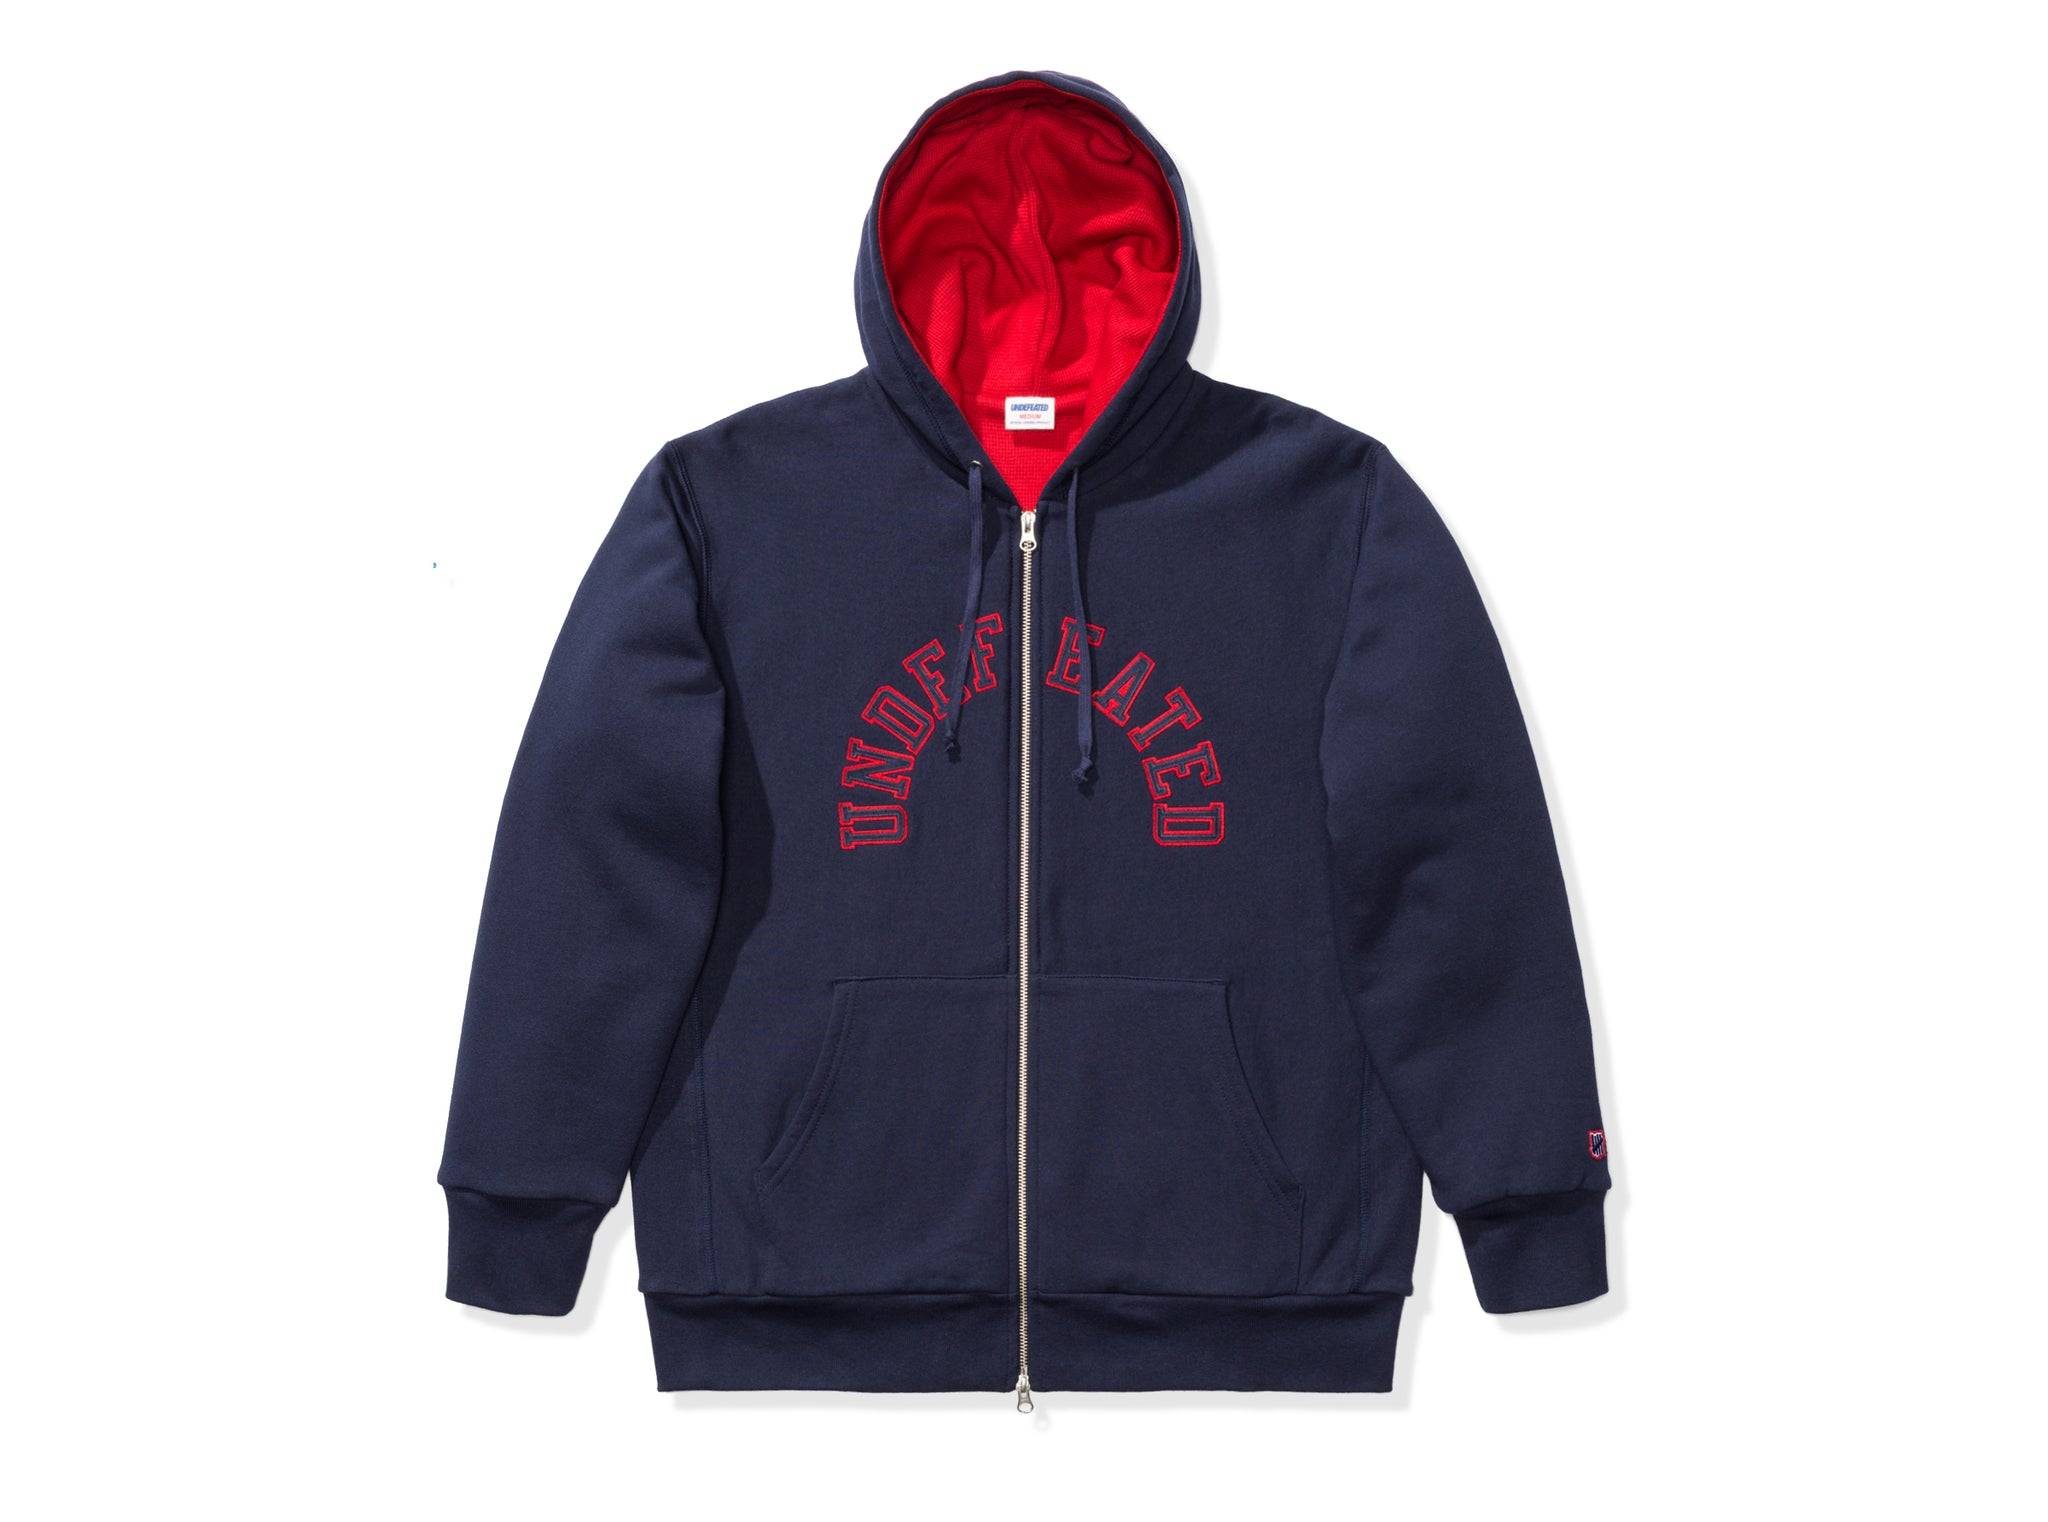 UNDEFEATED ARCH ZIP HOODIE